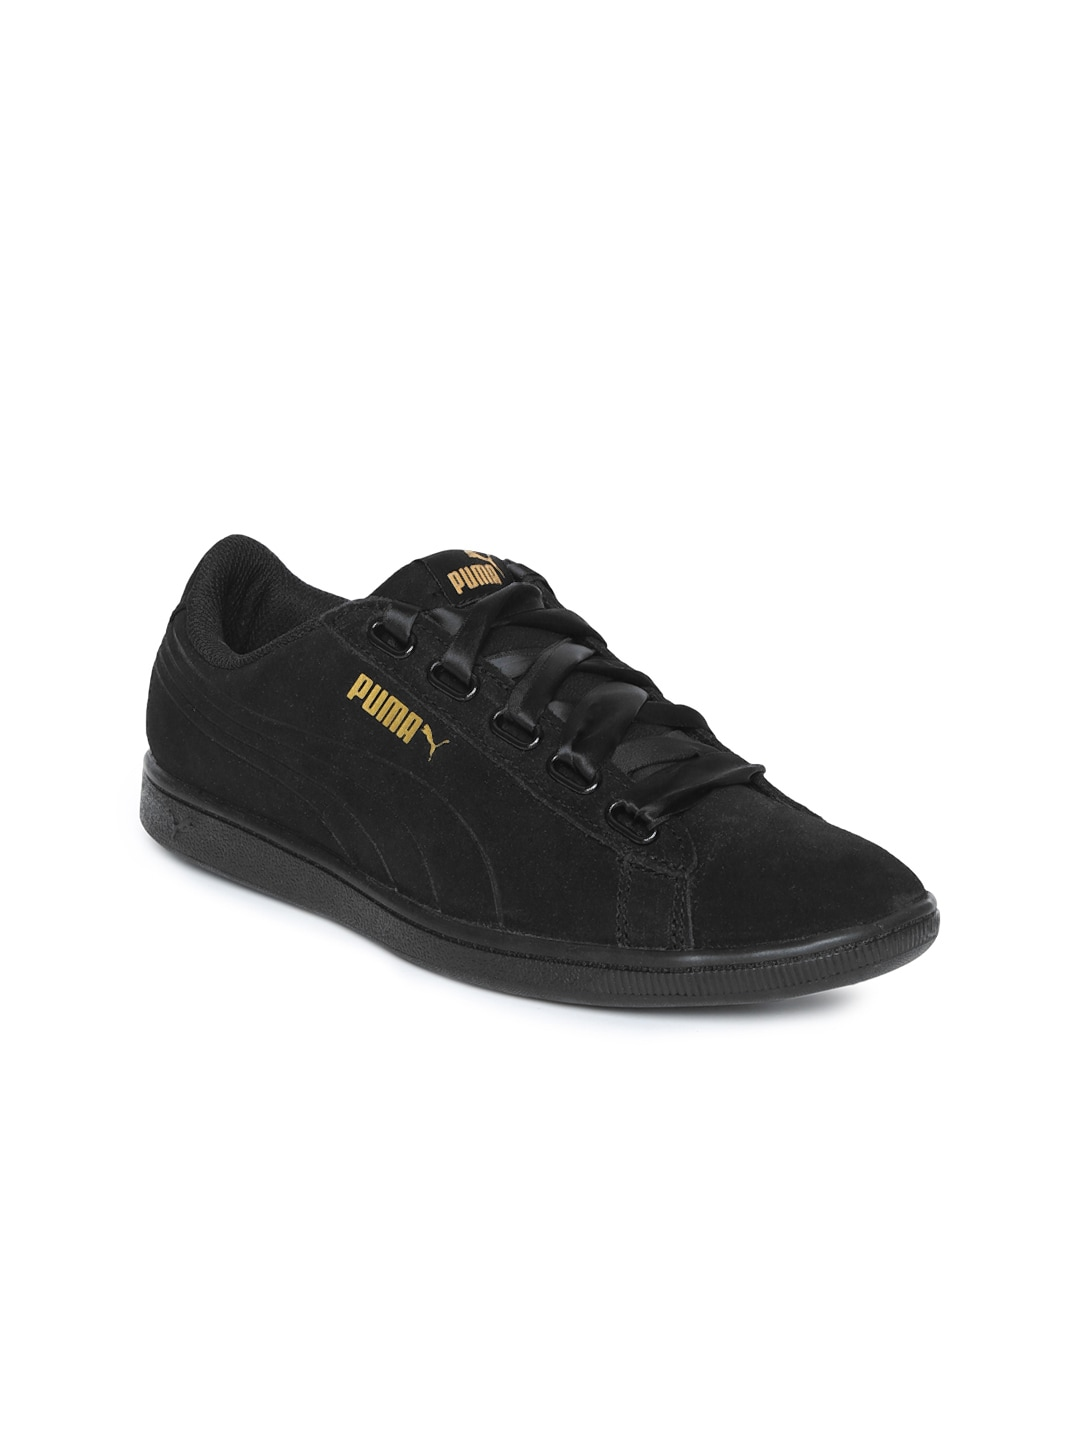 822a1a47e3dd Puma Shoes Women Footwear - Buy Puma Shoes Women Footwear online in India